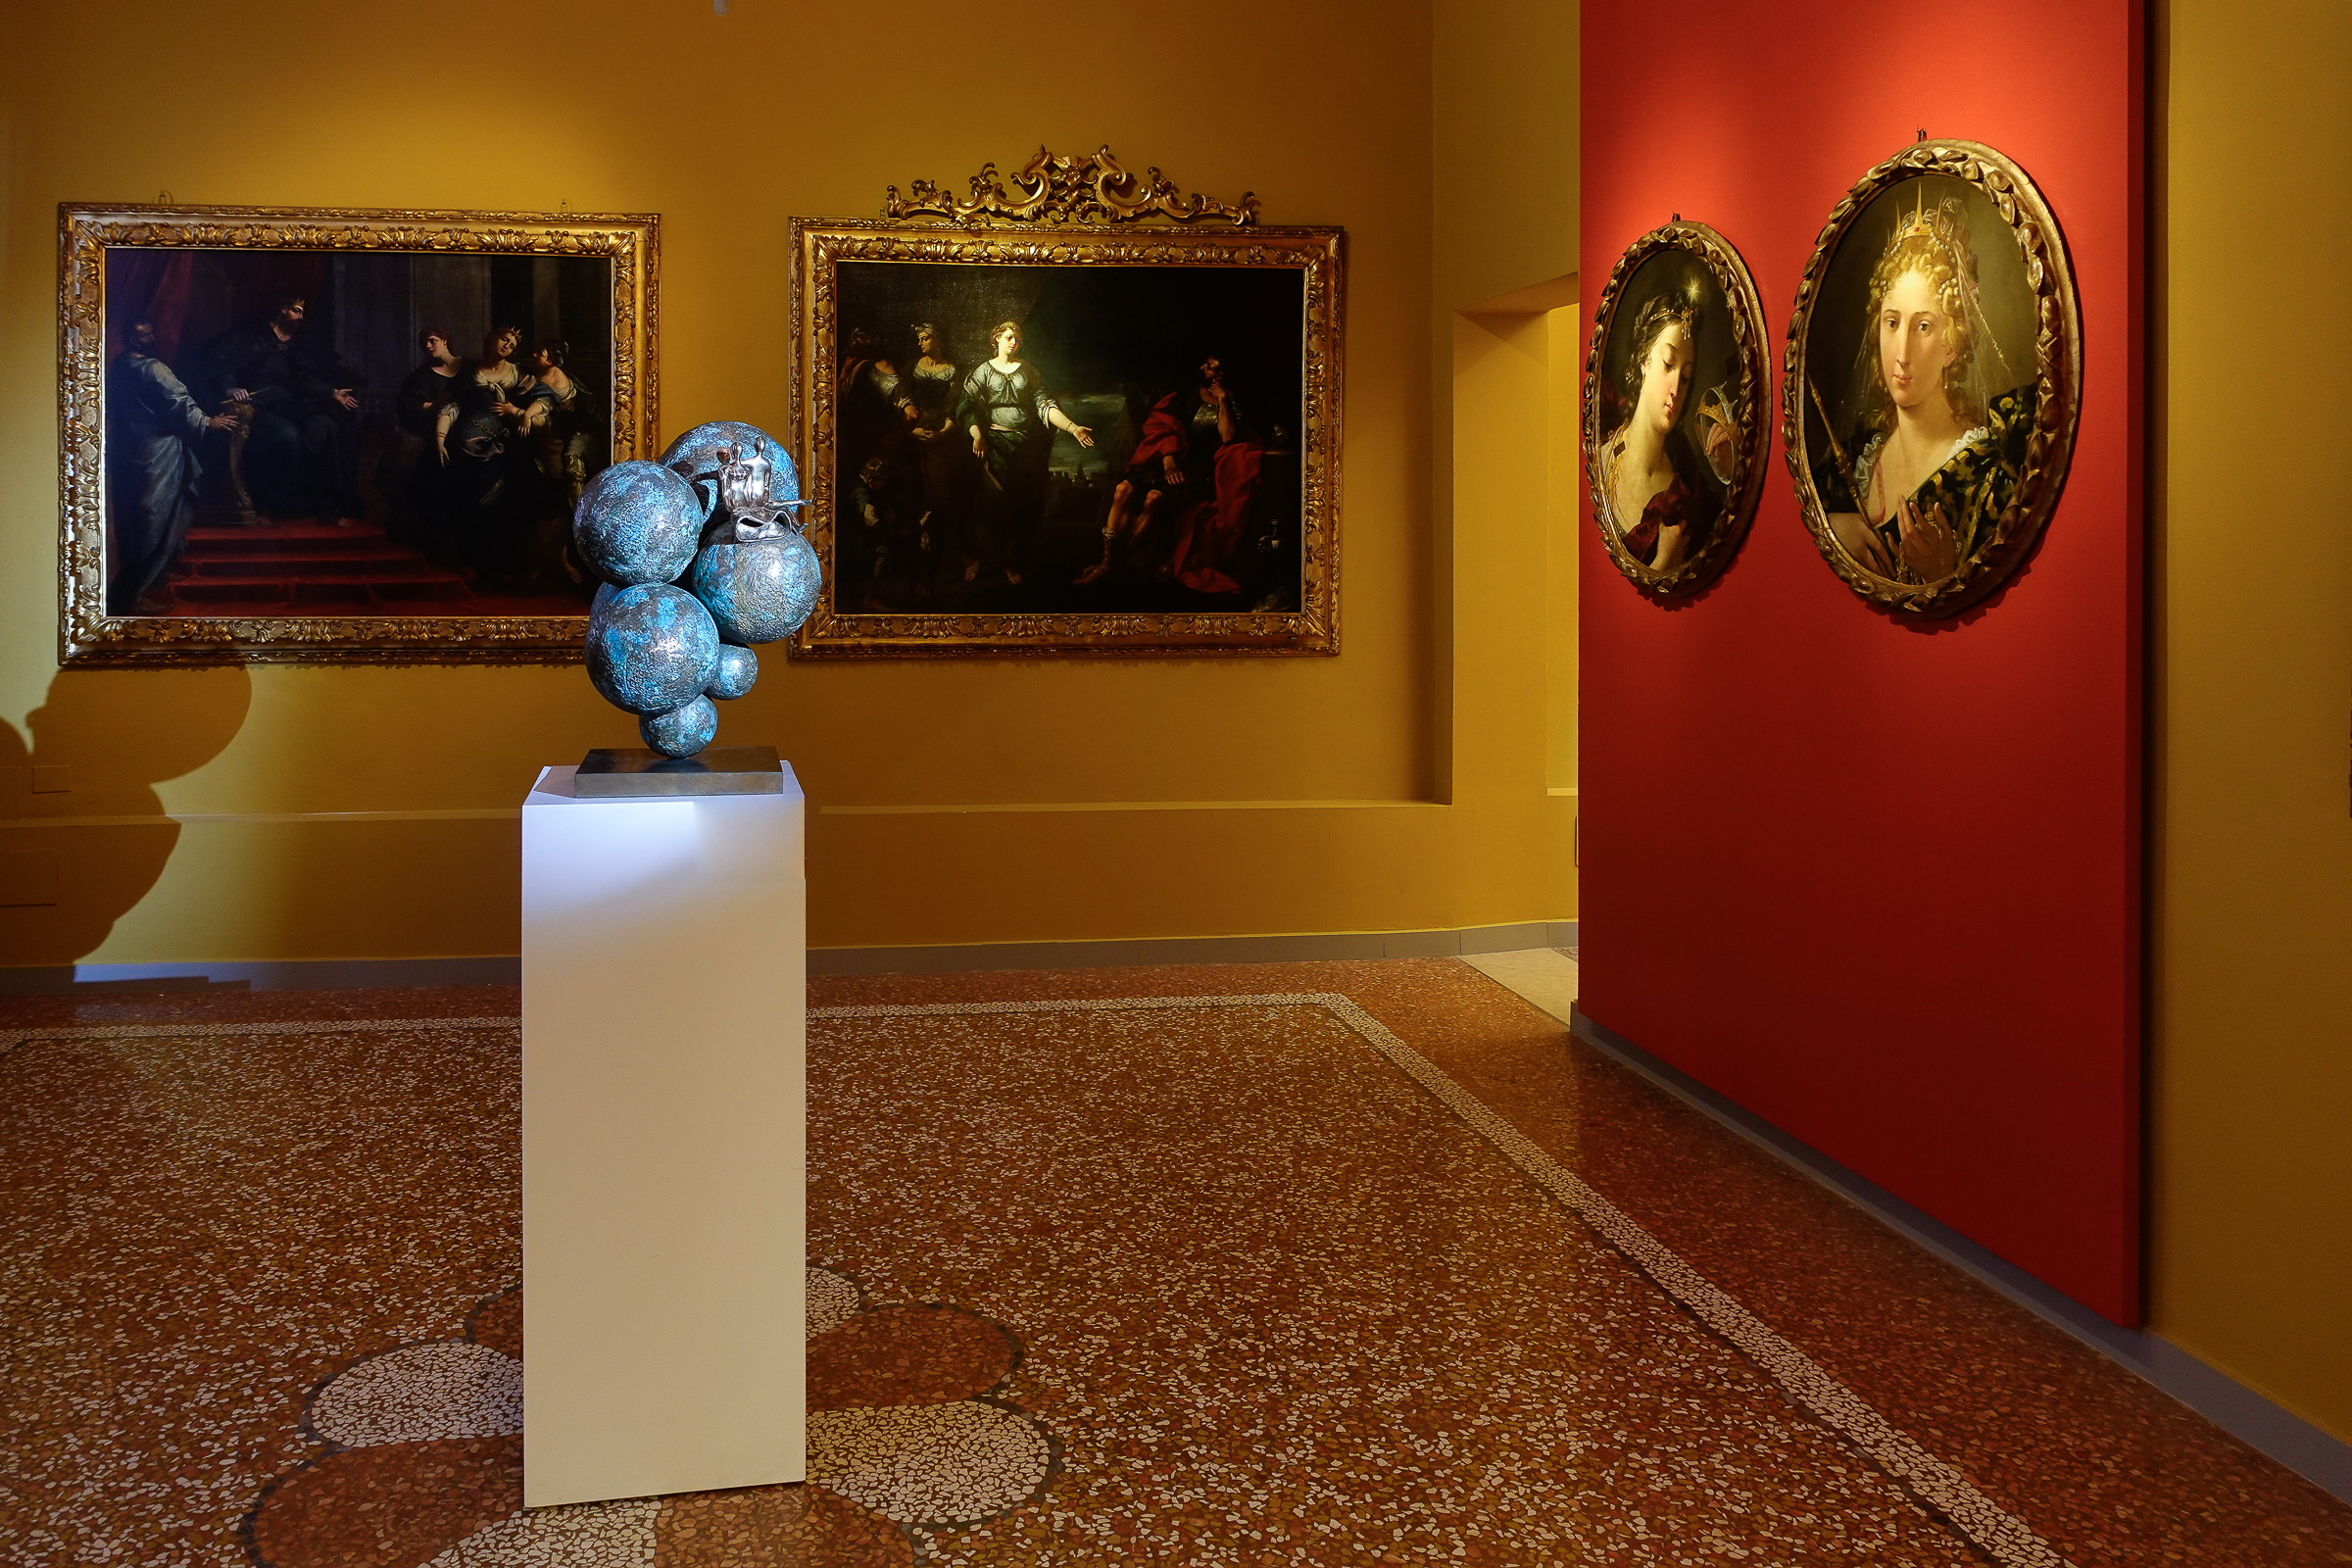 Our Universe, sculpture by Beatriz Gerenstein at the Museum La Quadreria in Bologna Italy